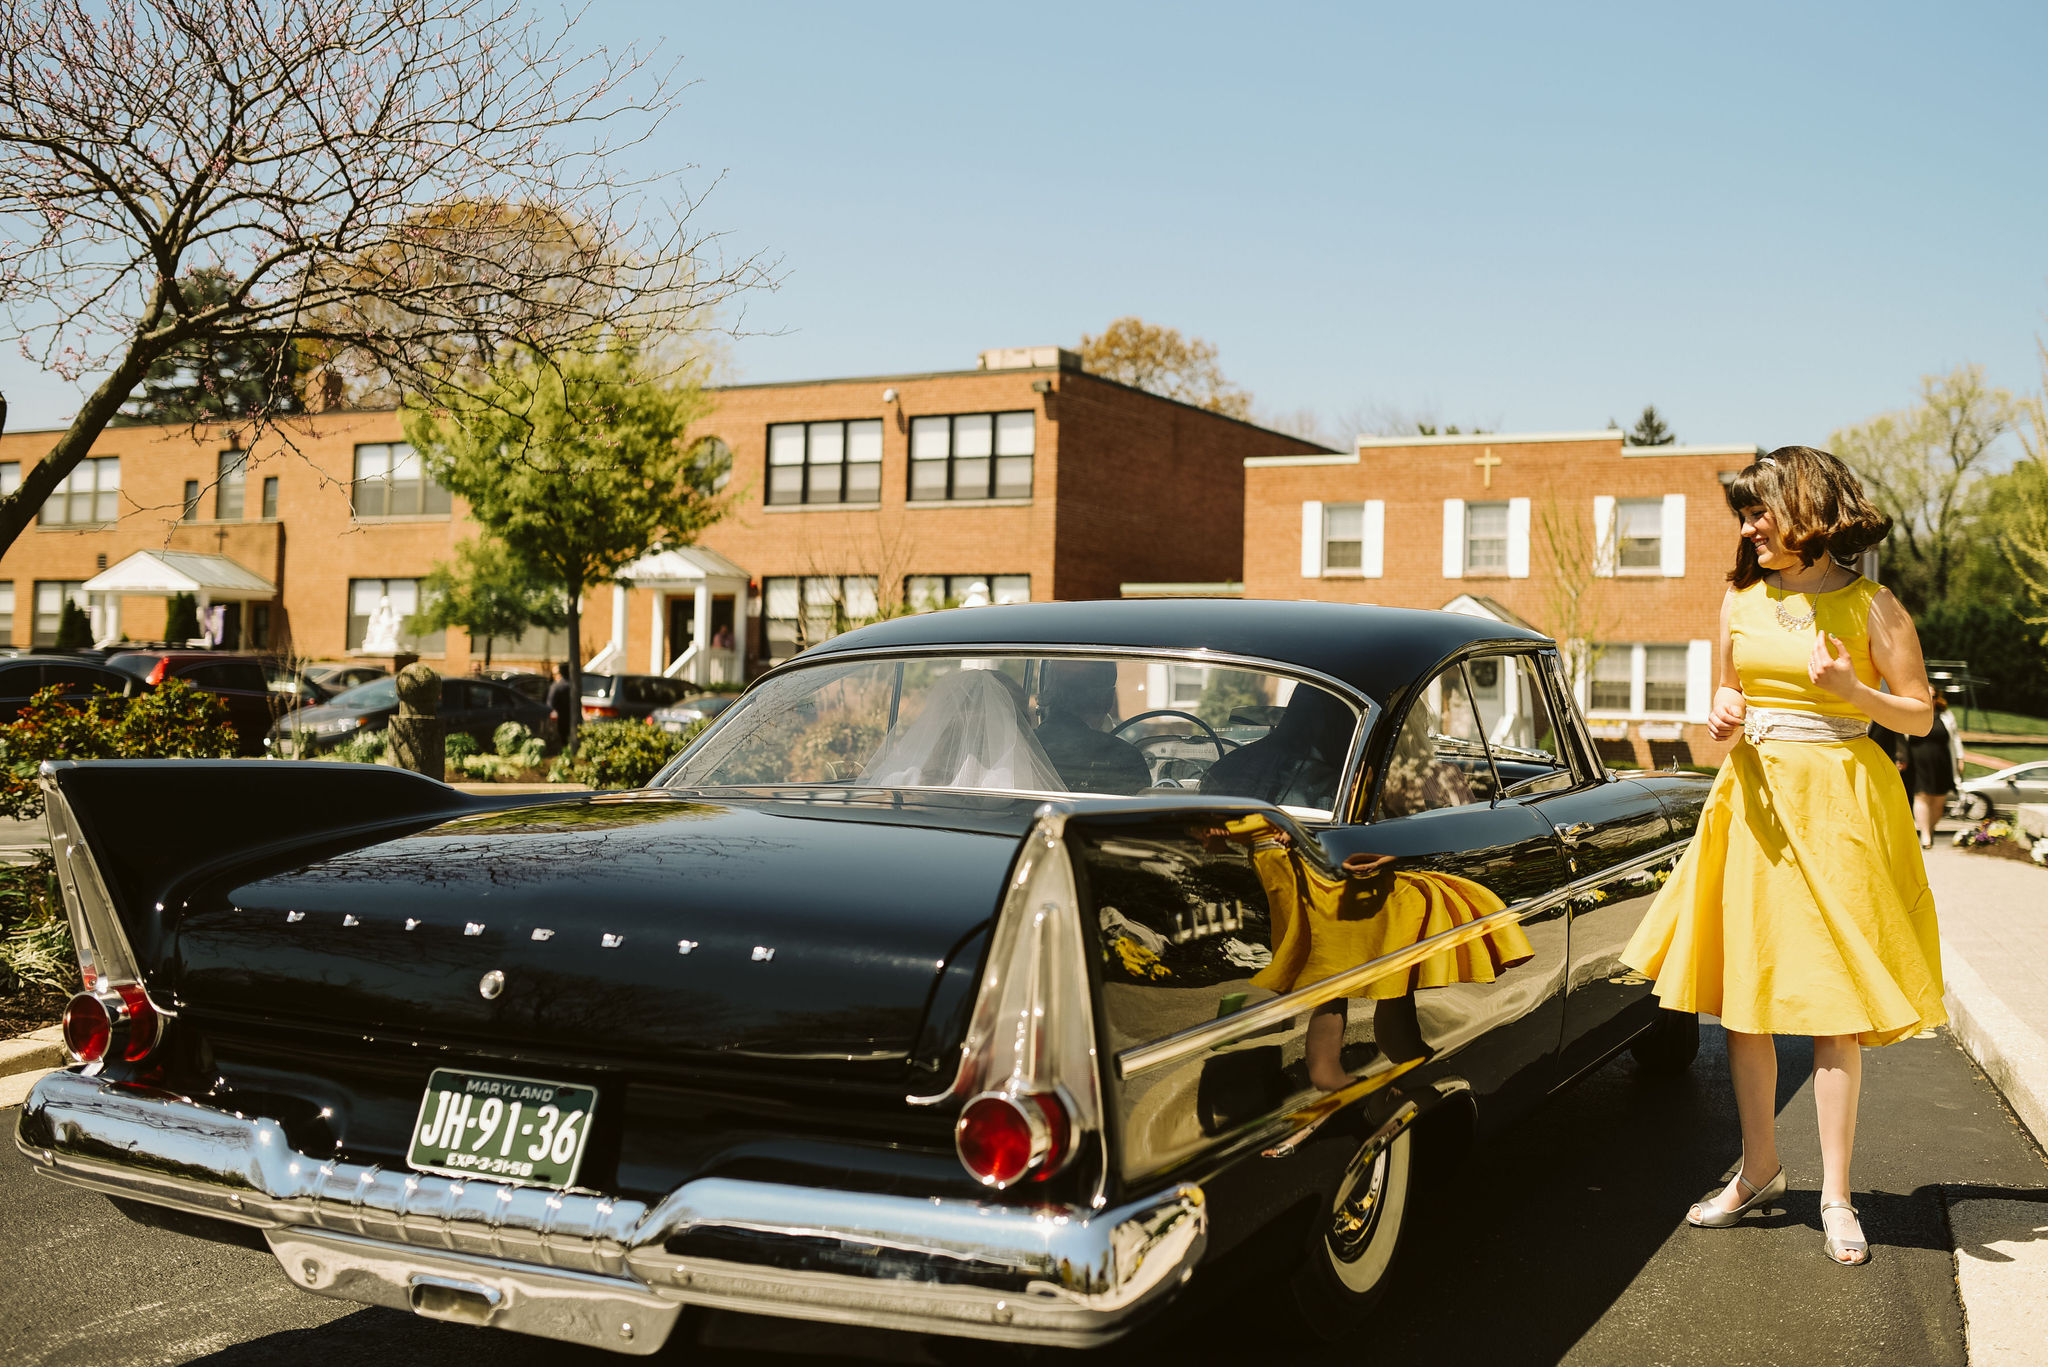 Baltimore, Church Wedding, Maryland Wedding Photographer, Vintage, Classic Car, 50s